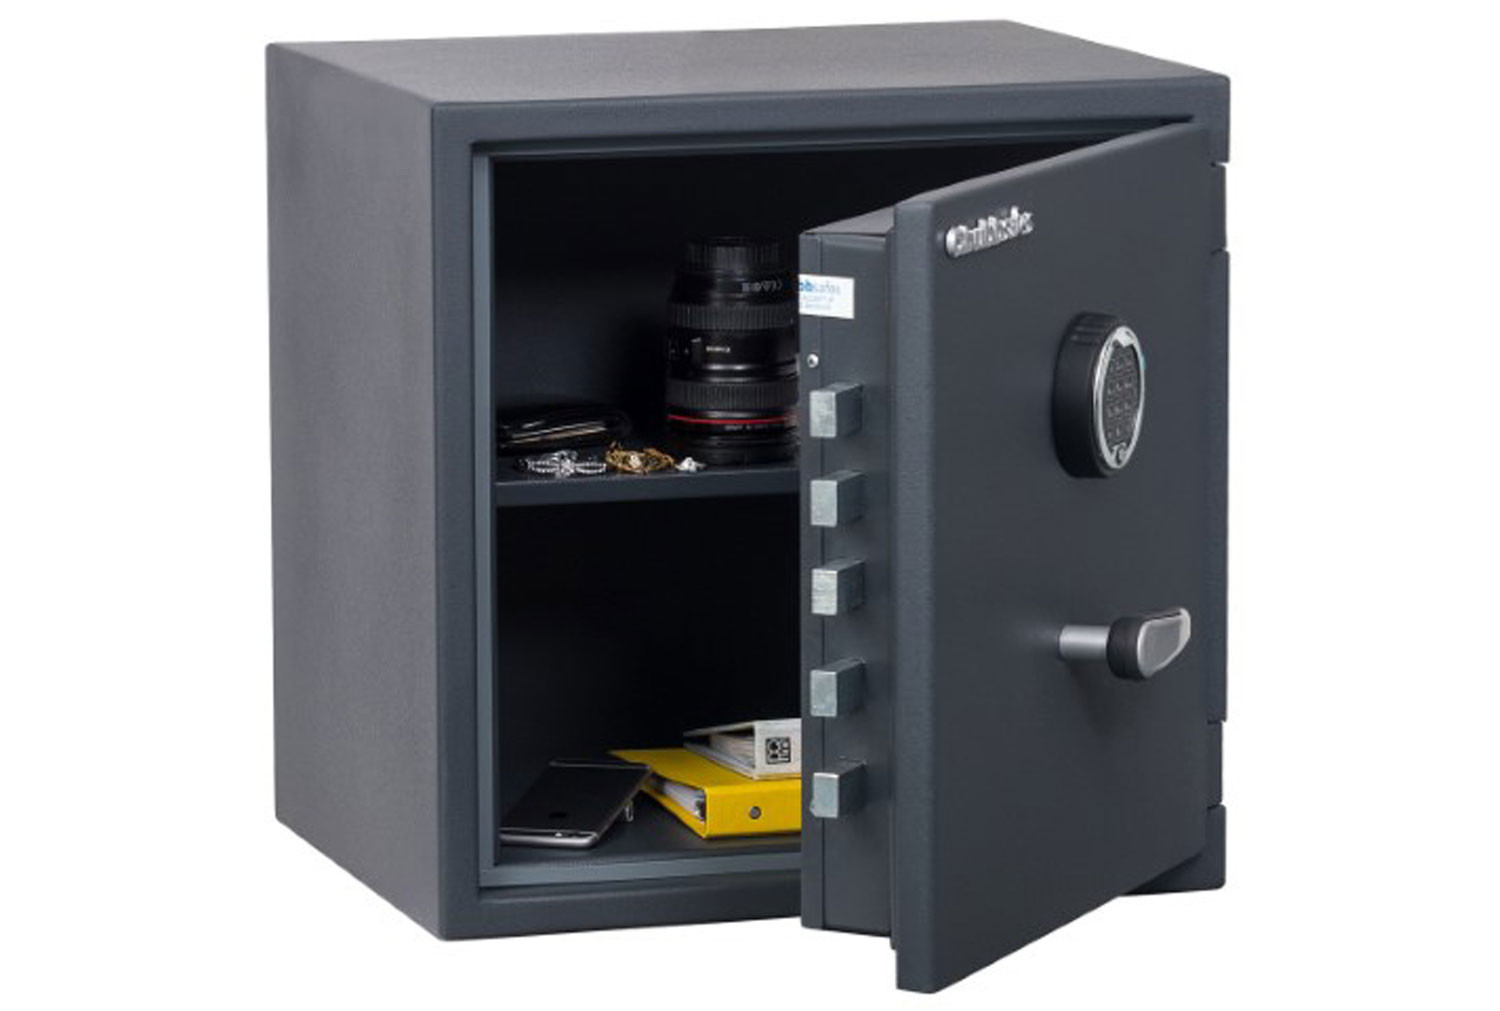 Chubbsafes Senator Grade 1 M2E Fire Resistant Safe With Electronic Lock (46ltrs)